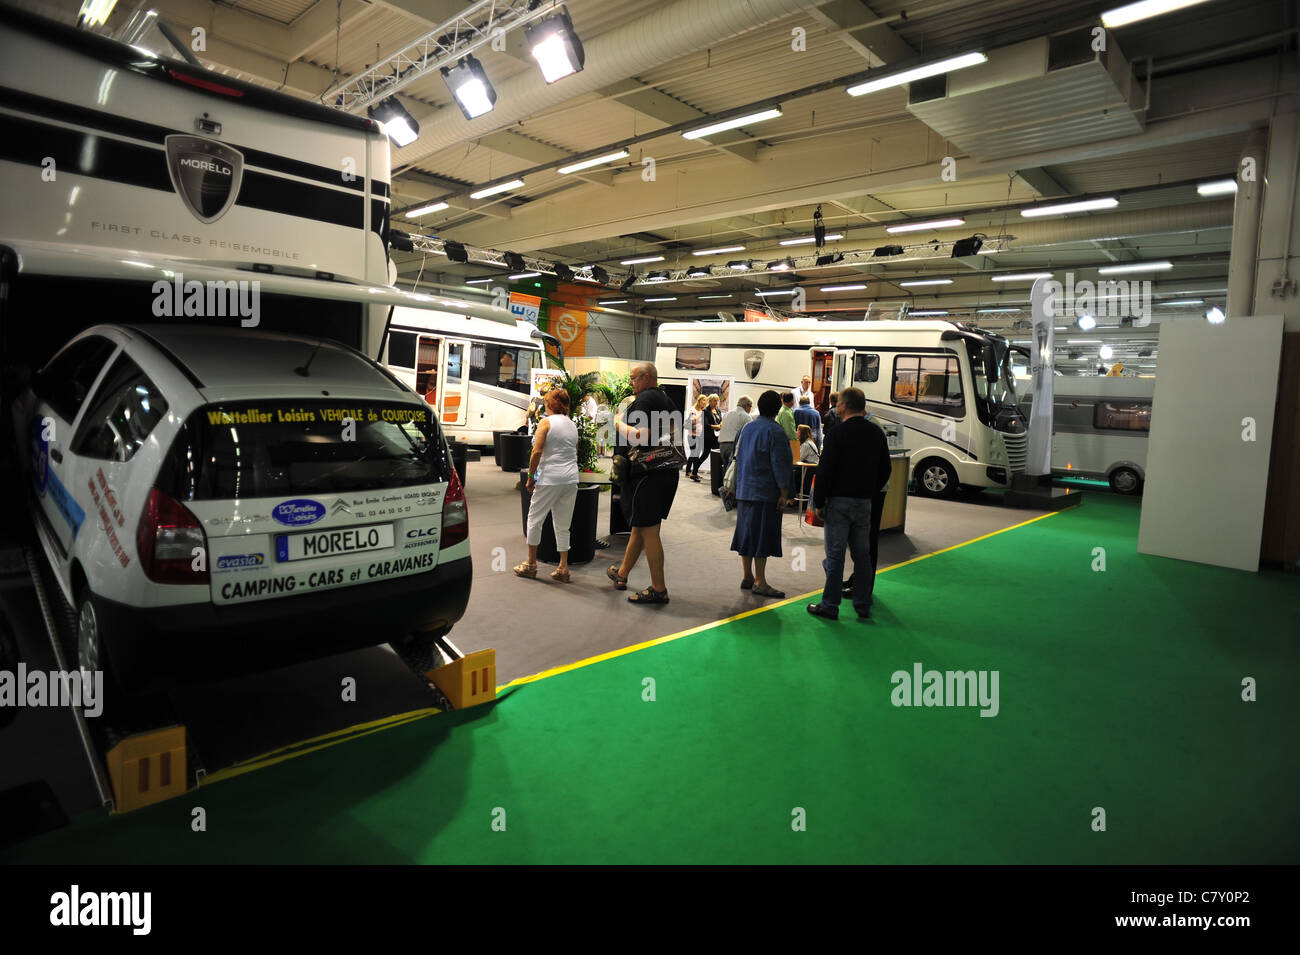 Salon Camping Car Lyon Vehicules Stock Photos Vehicules Stock Images Alamy